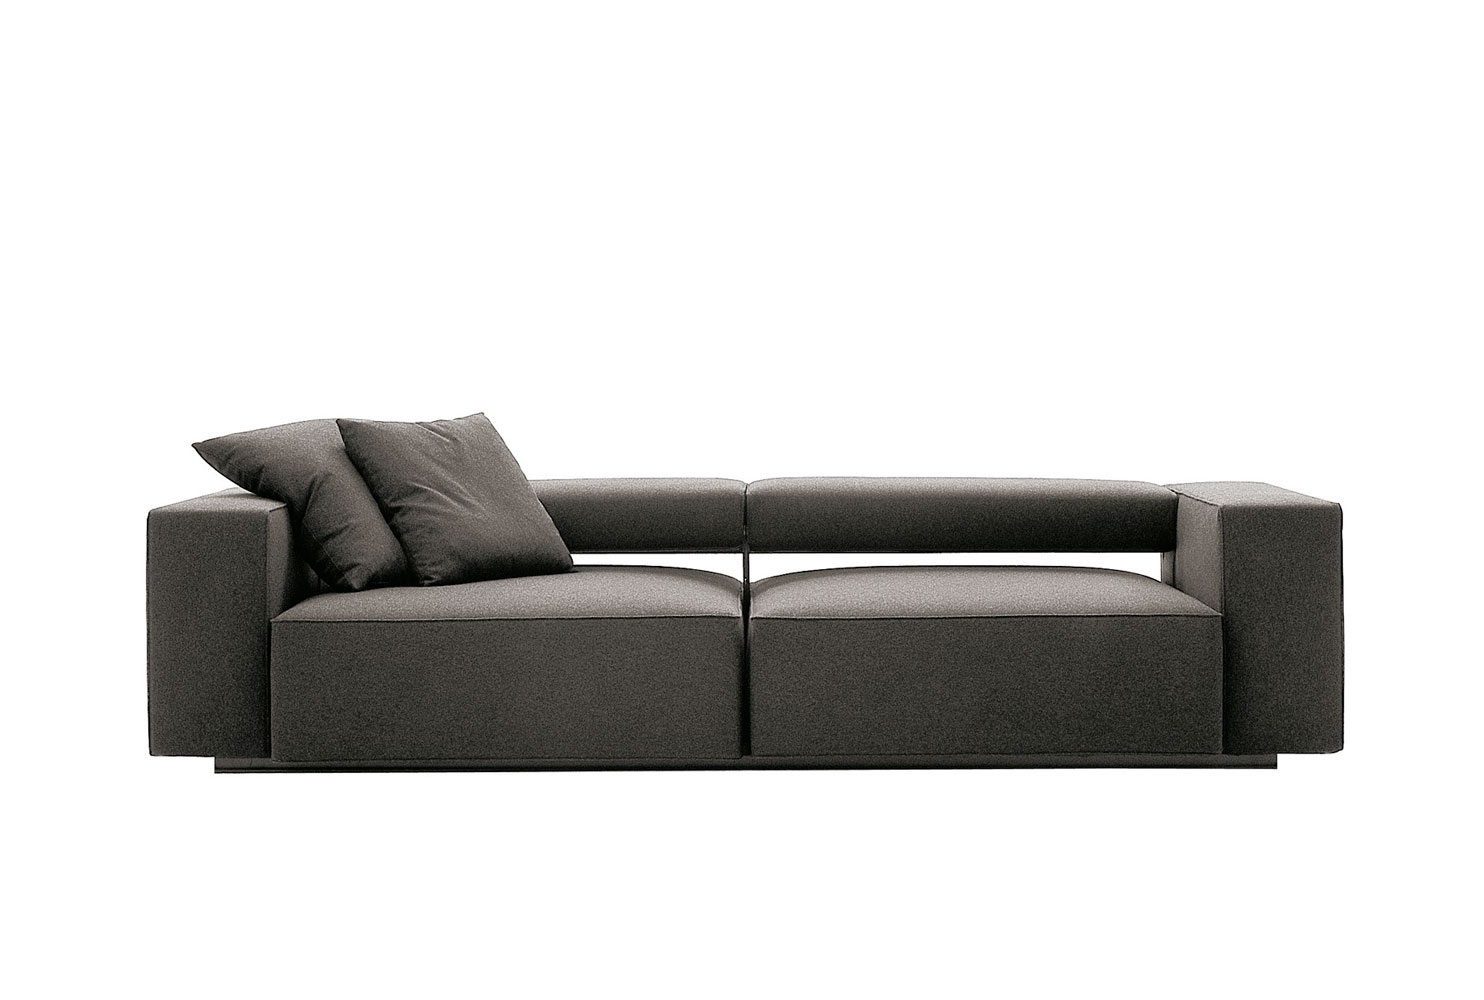 B b italia andy 13 sofa buy from campbell watson uk for B b couch